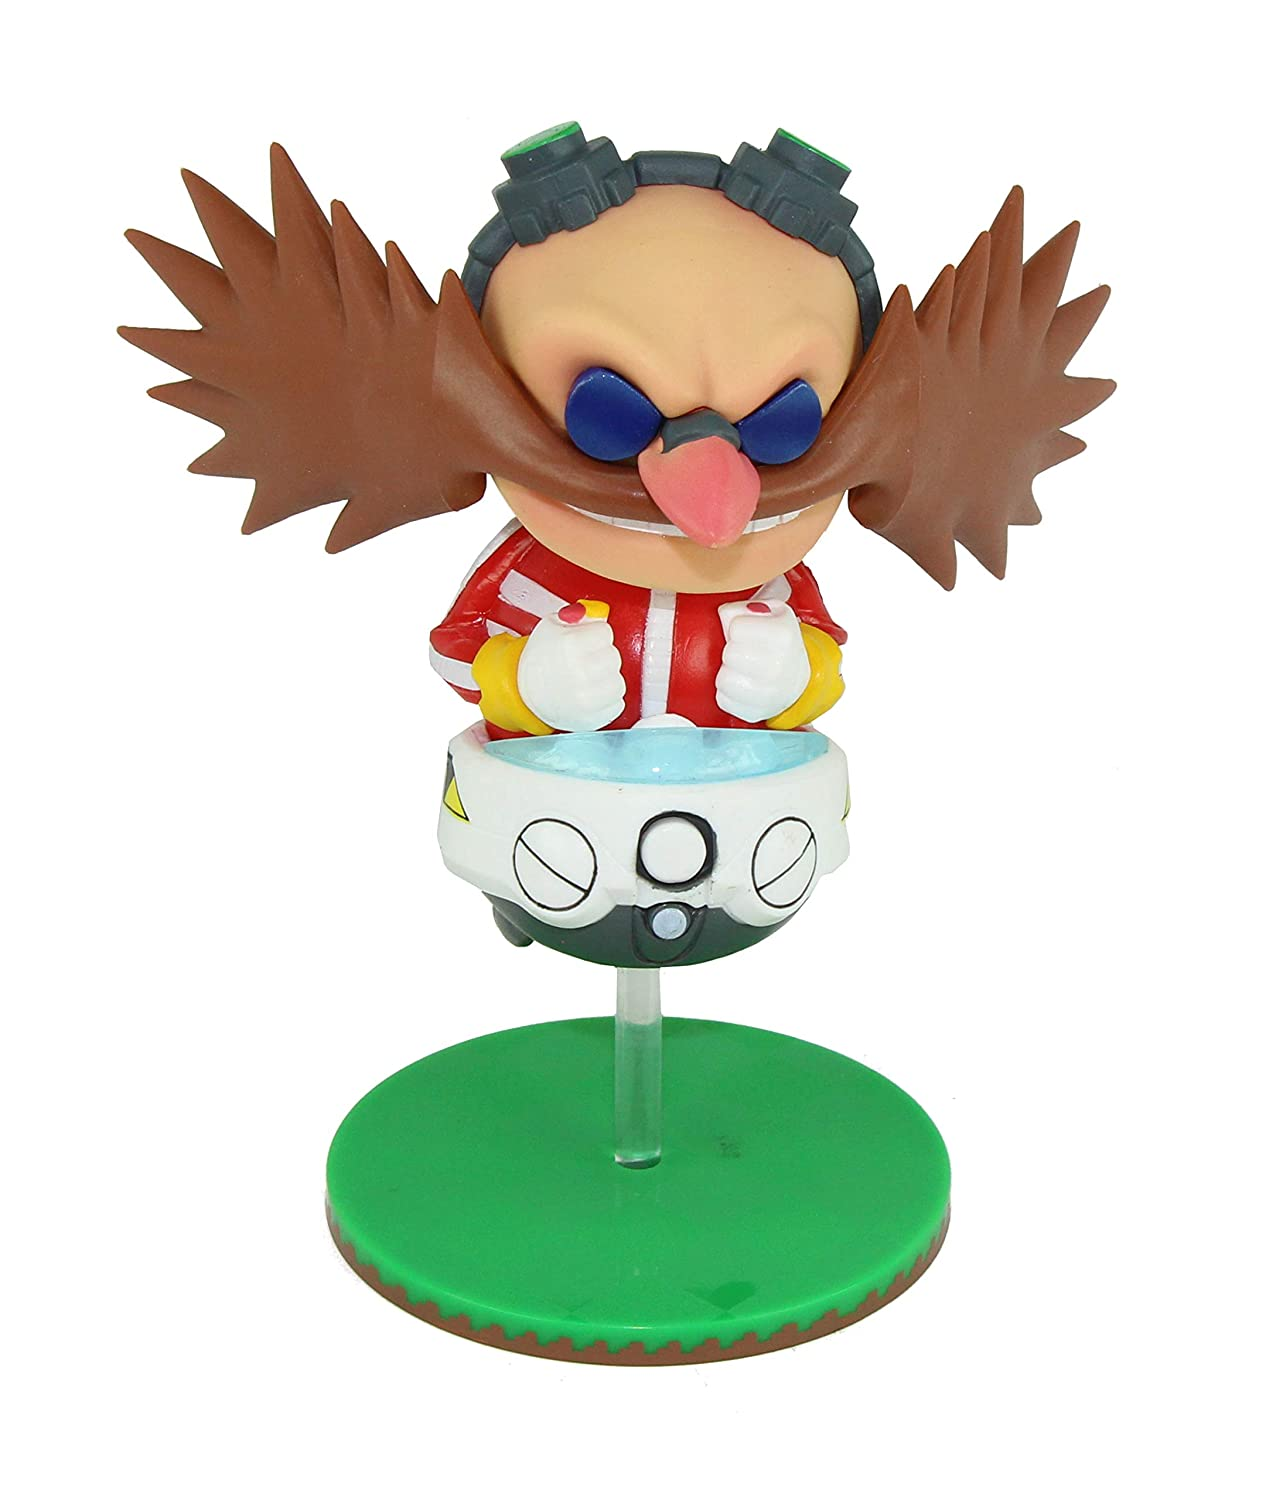 Loot Gaming Exckusive Eggman Figure Sonic the Hedgehog Dr Not In Stores